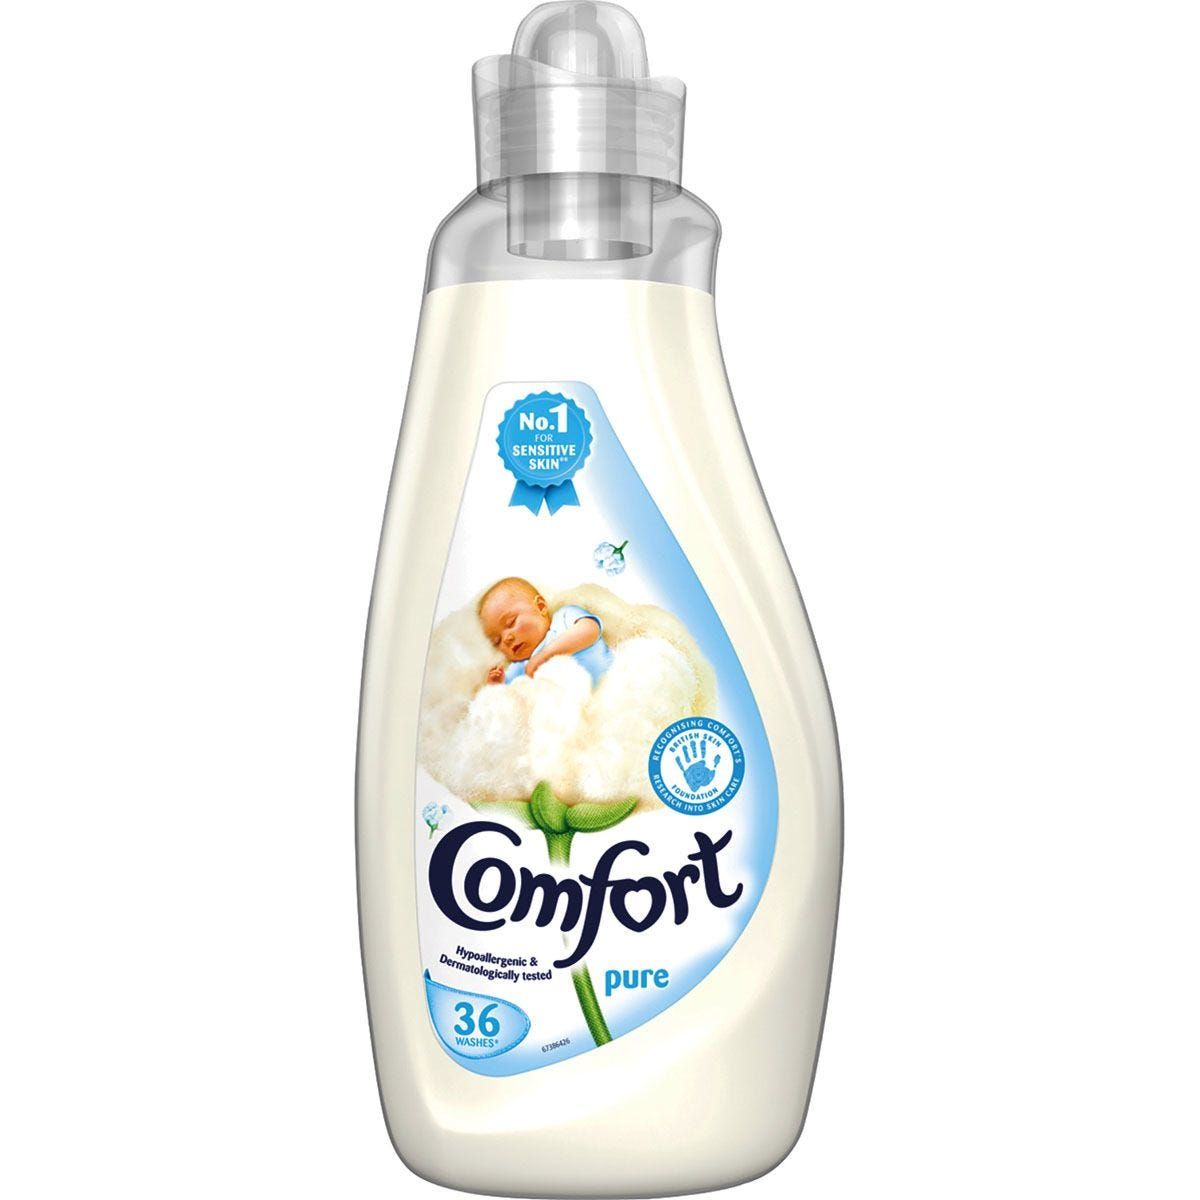 Comfort Pure Fabric Conditioner - 1.26L